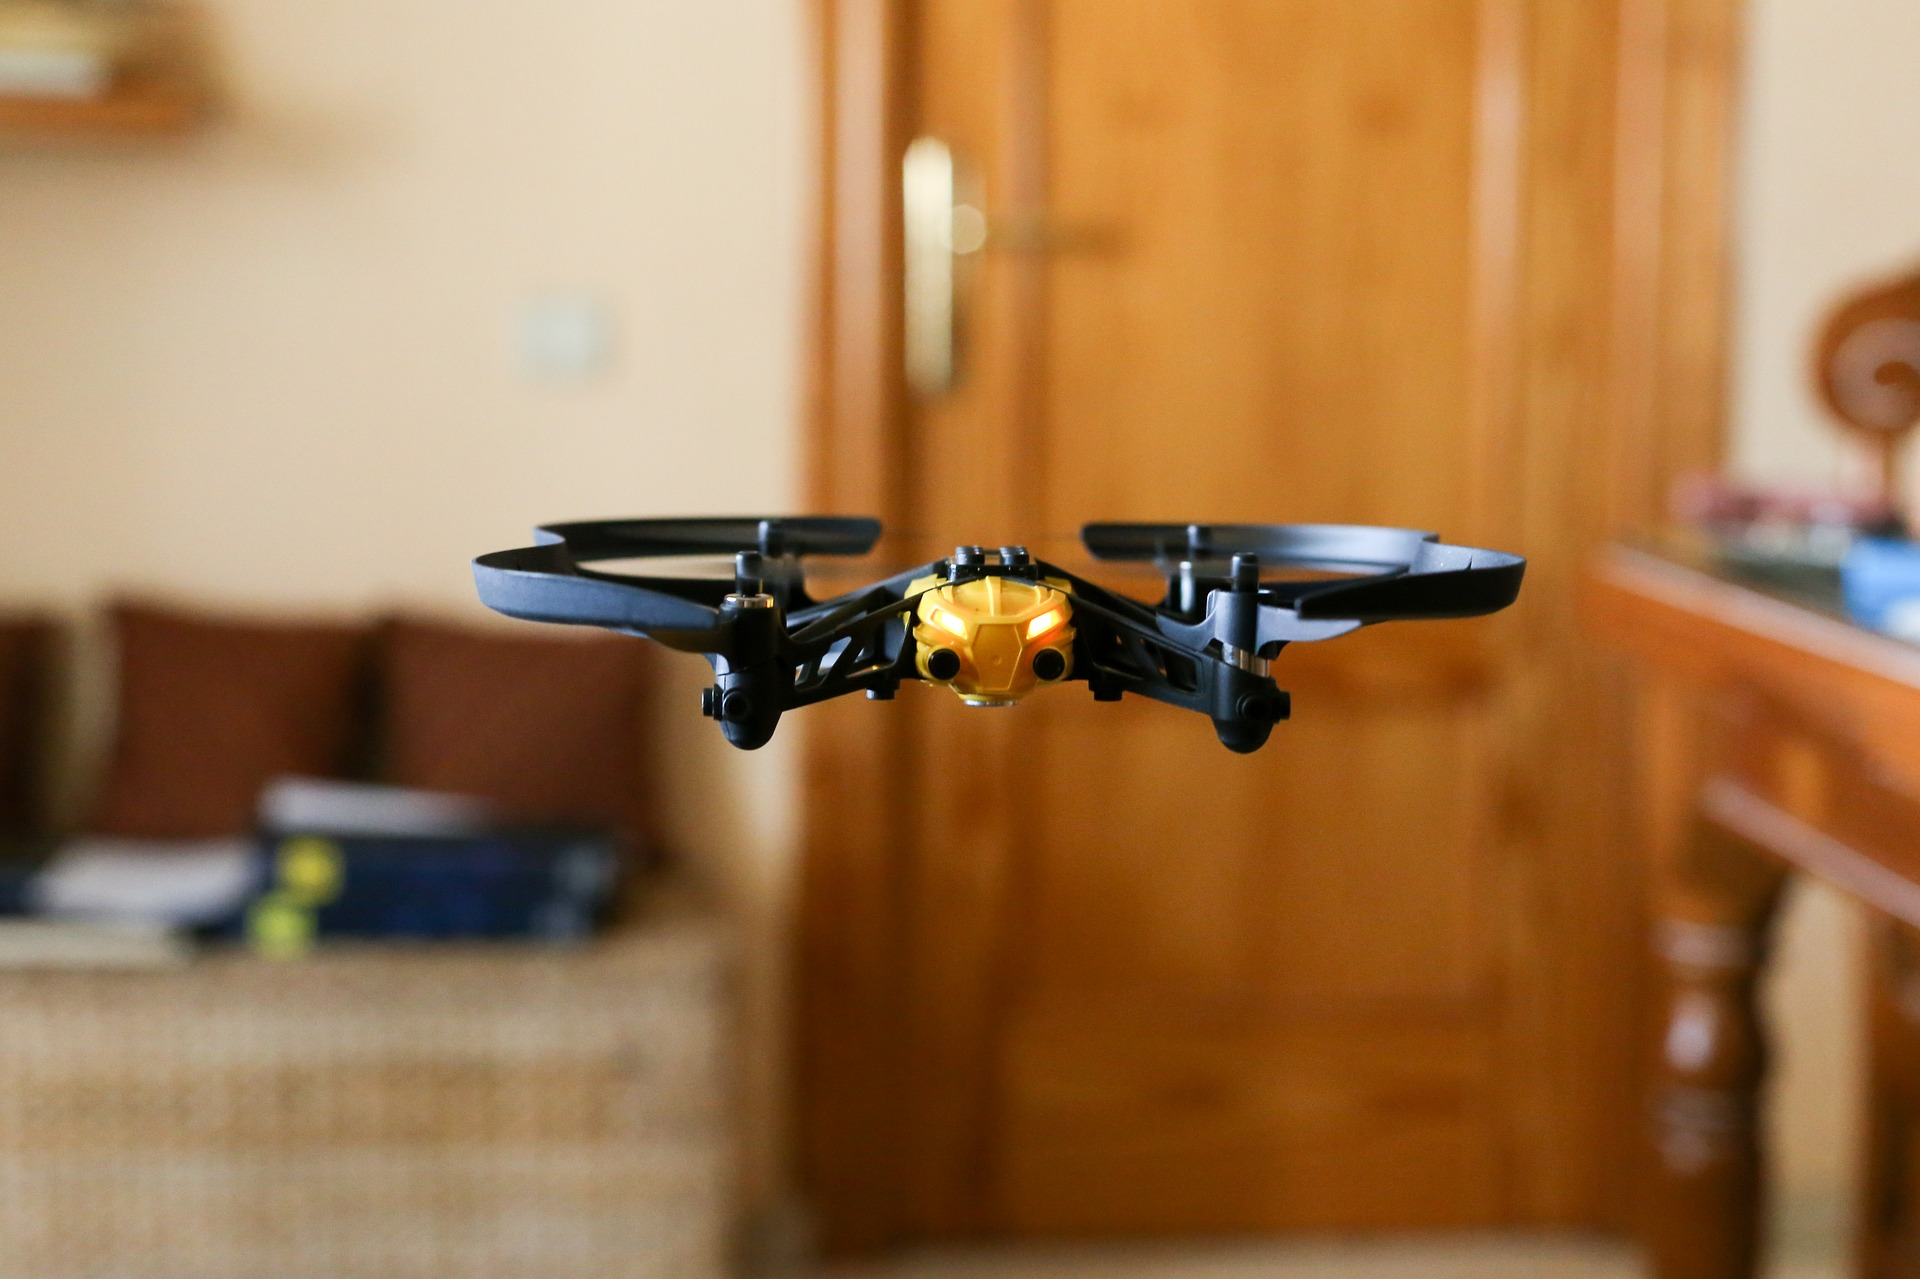 Drone flying indoors